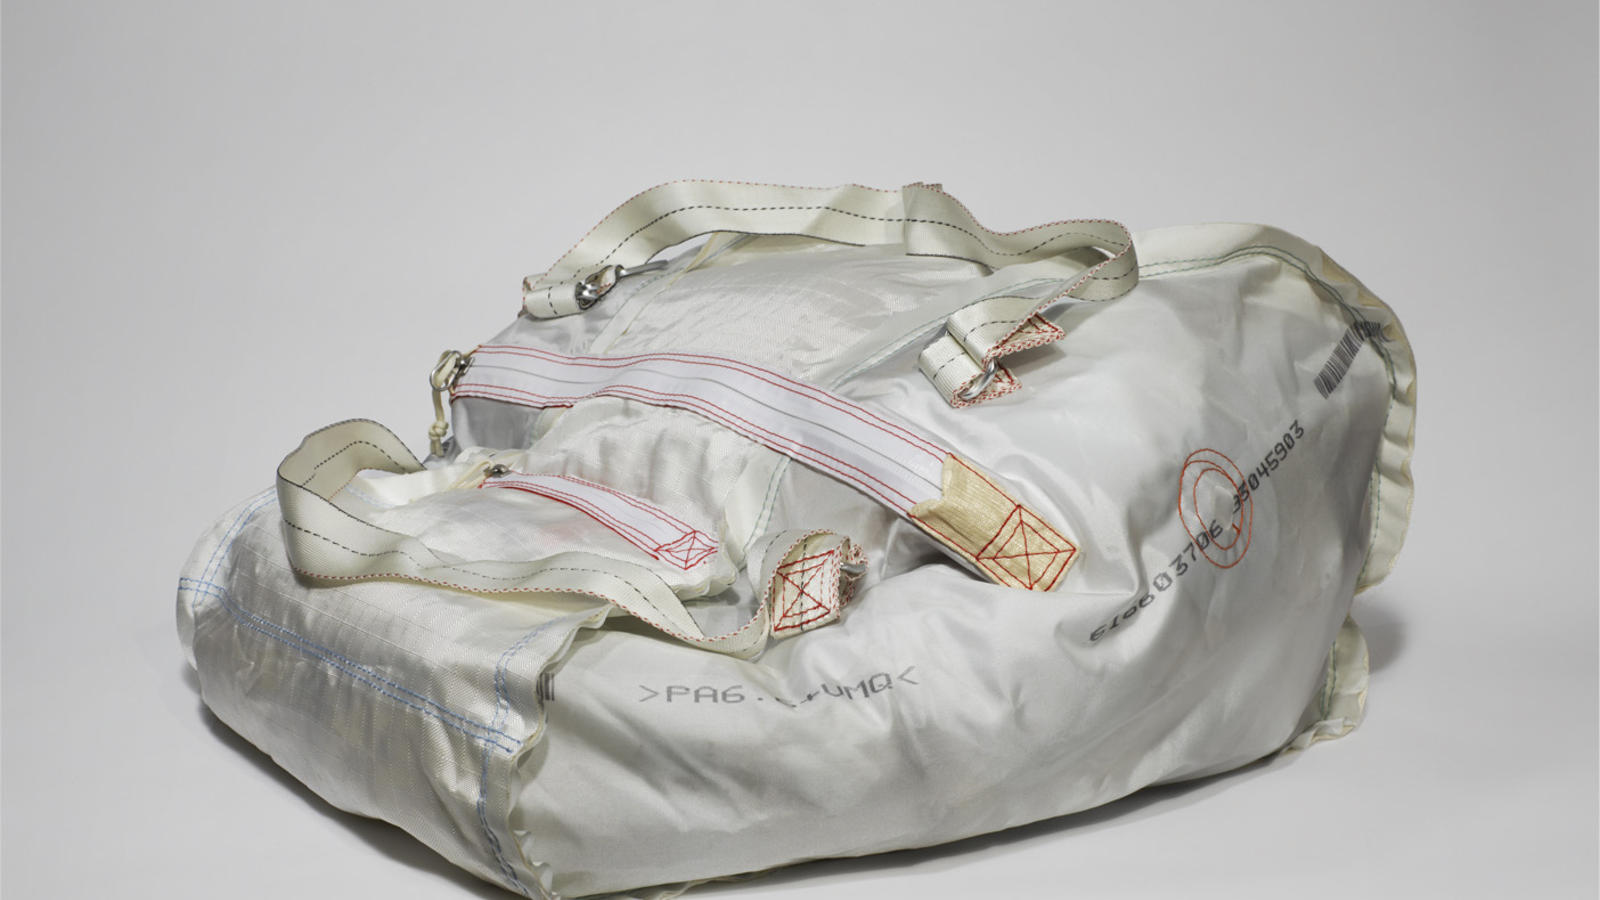 Airbag_Bag_TS.3.06.12_086